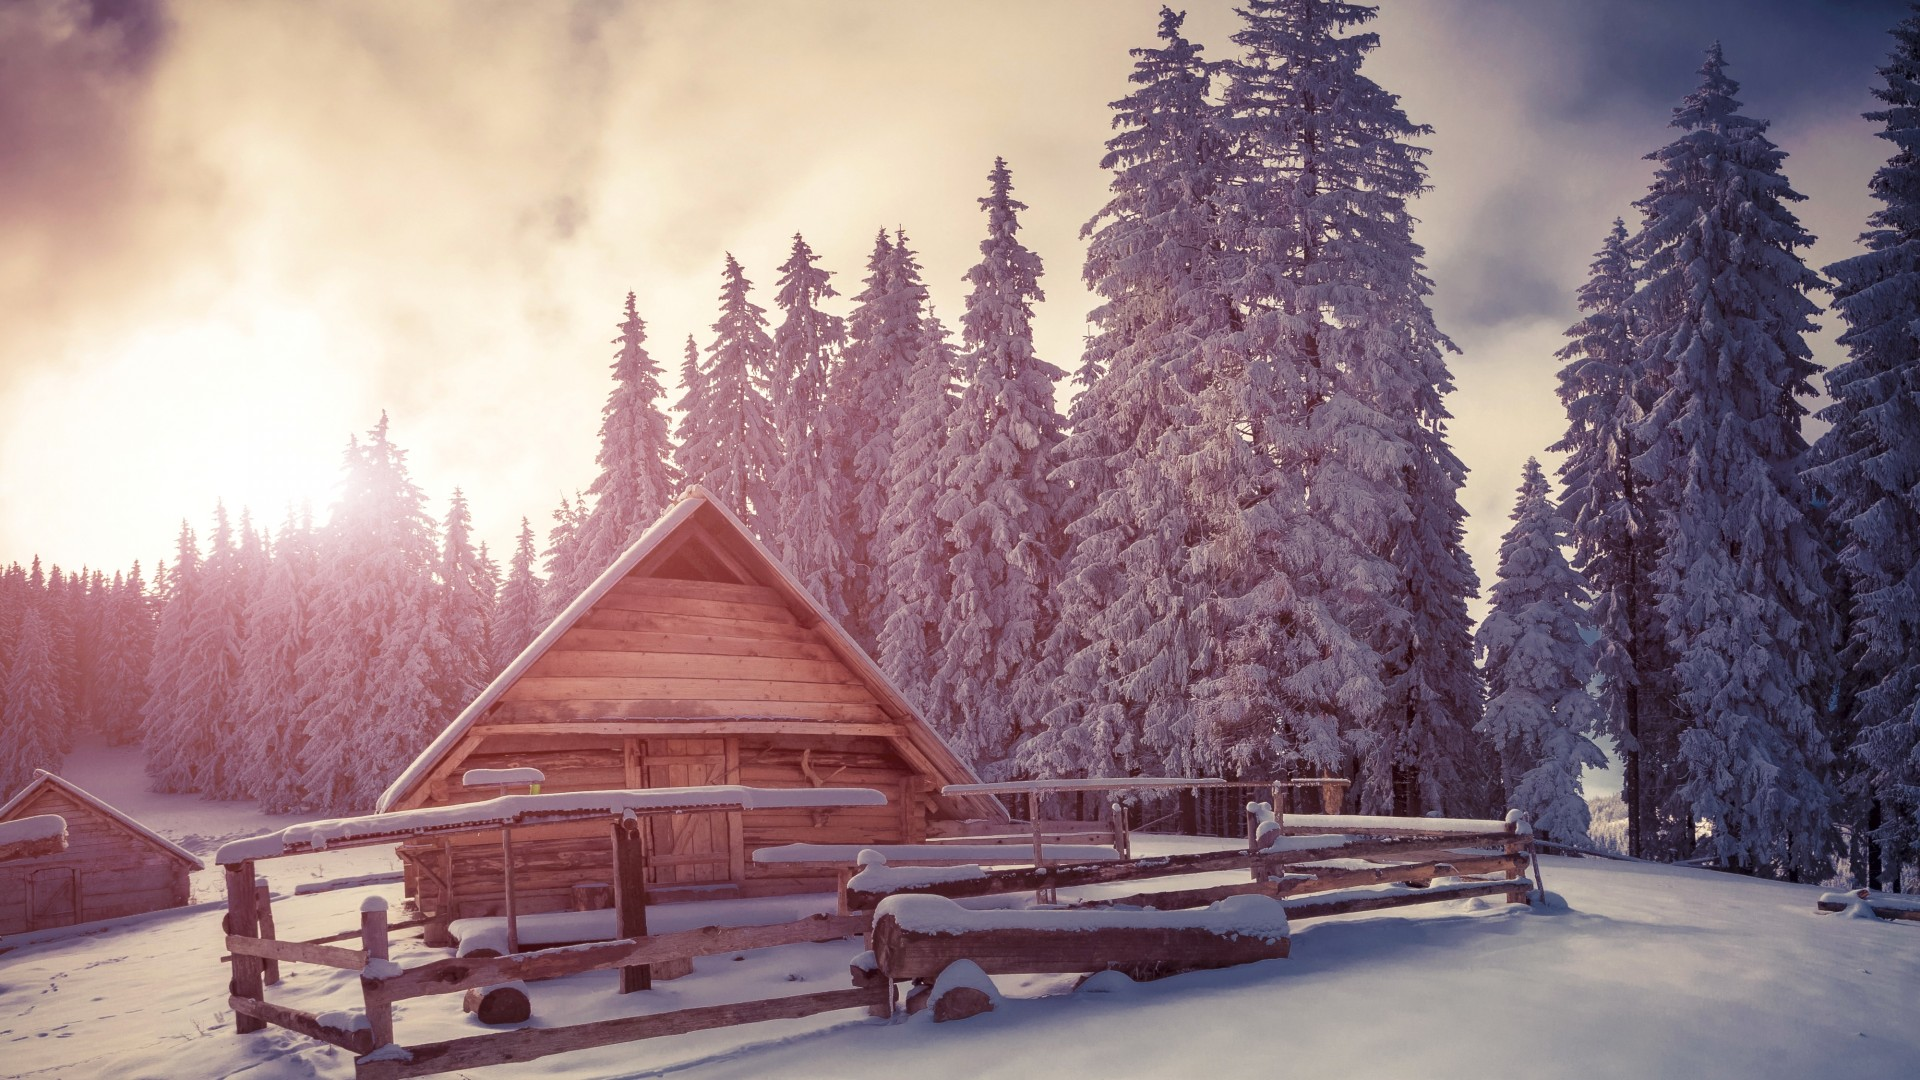 Wallpaper Pines 4k Hd Wallpaper Snow Sunset House